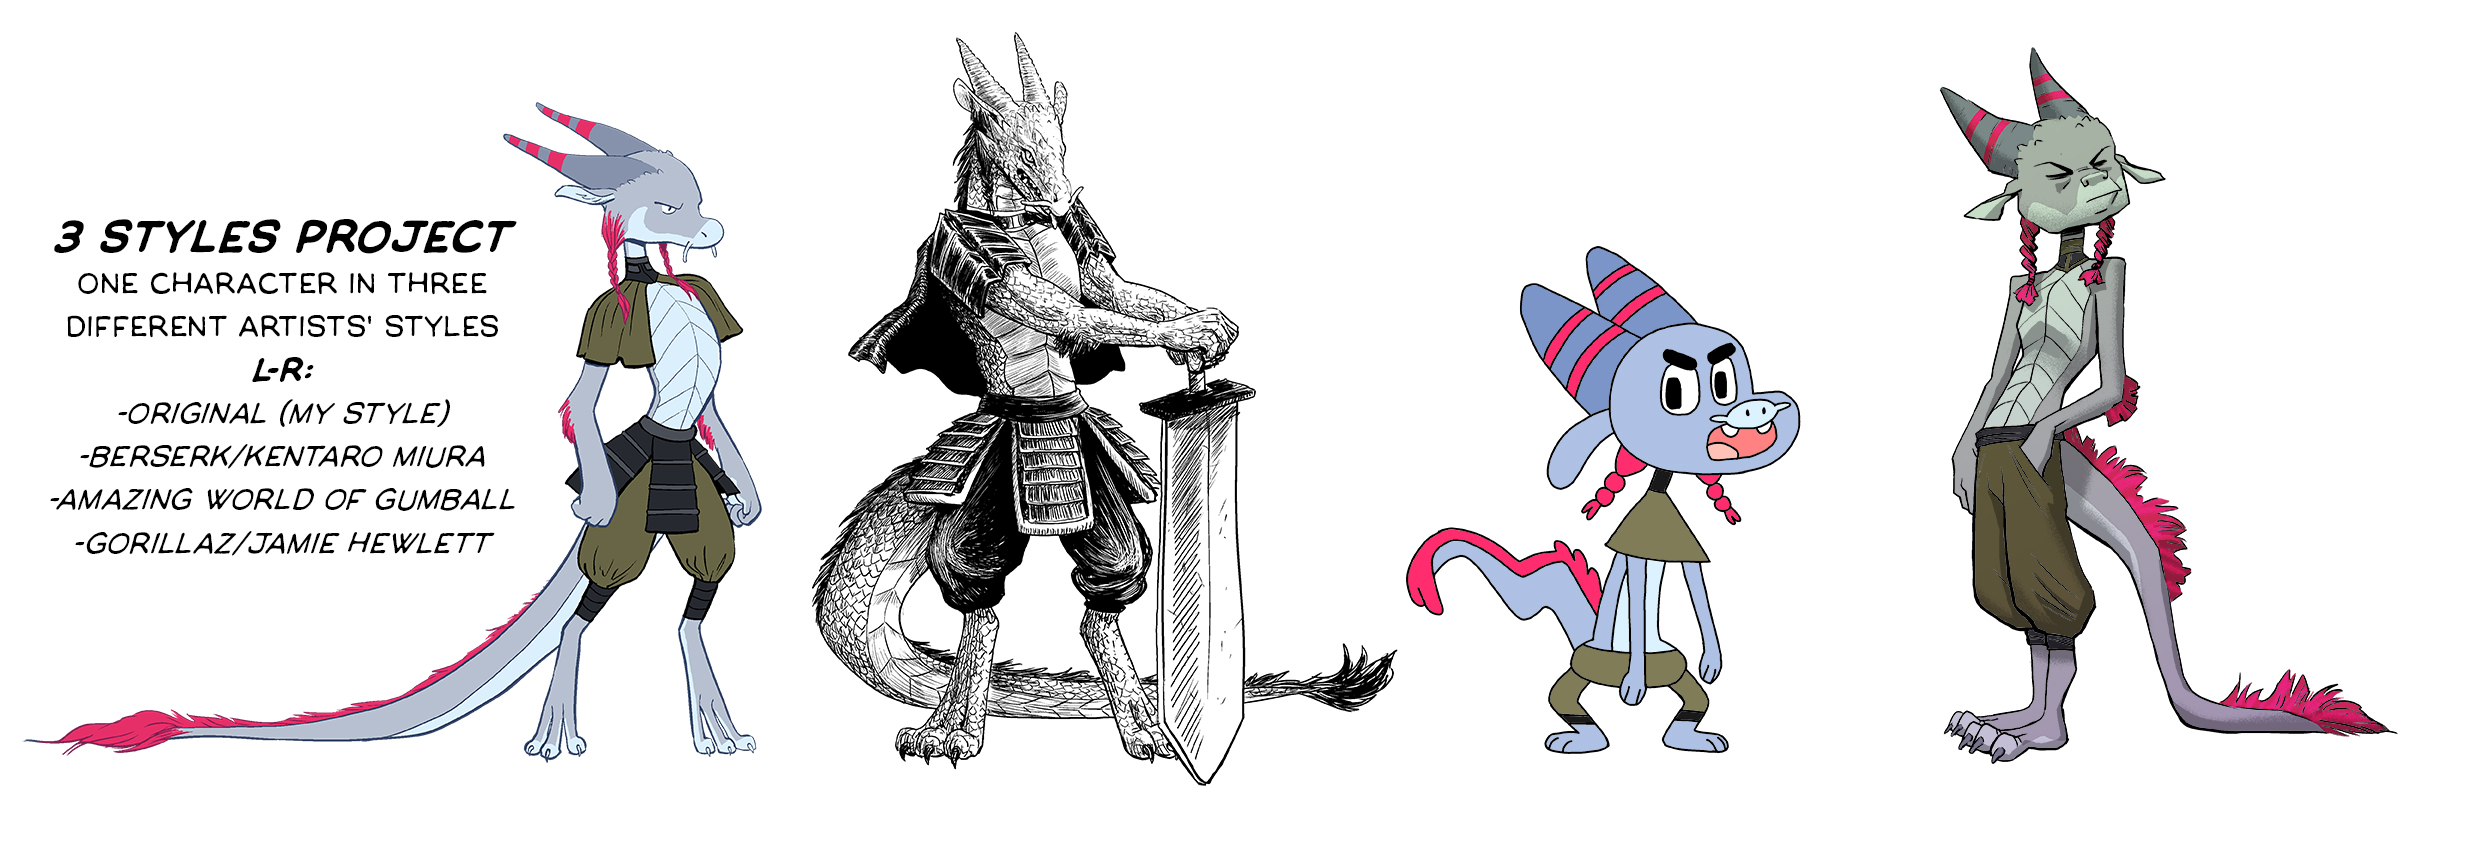 Design exercise translating a character into different artists' styles